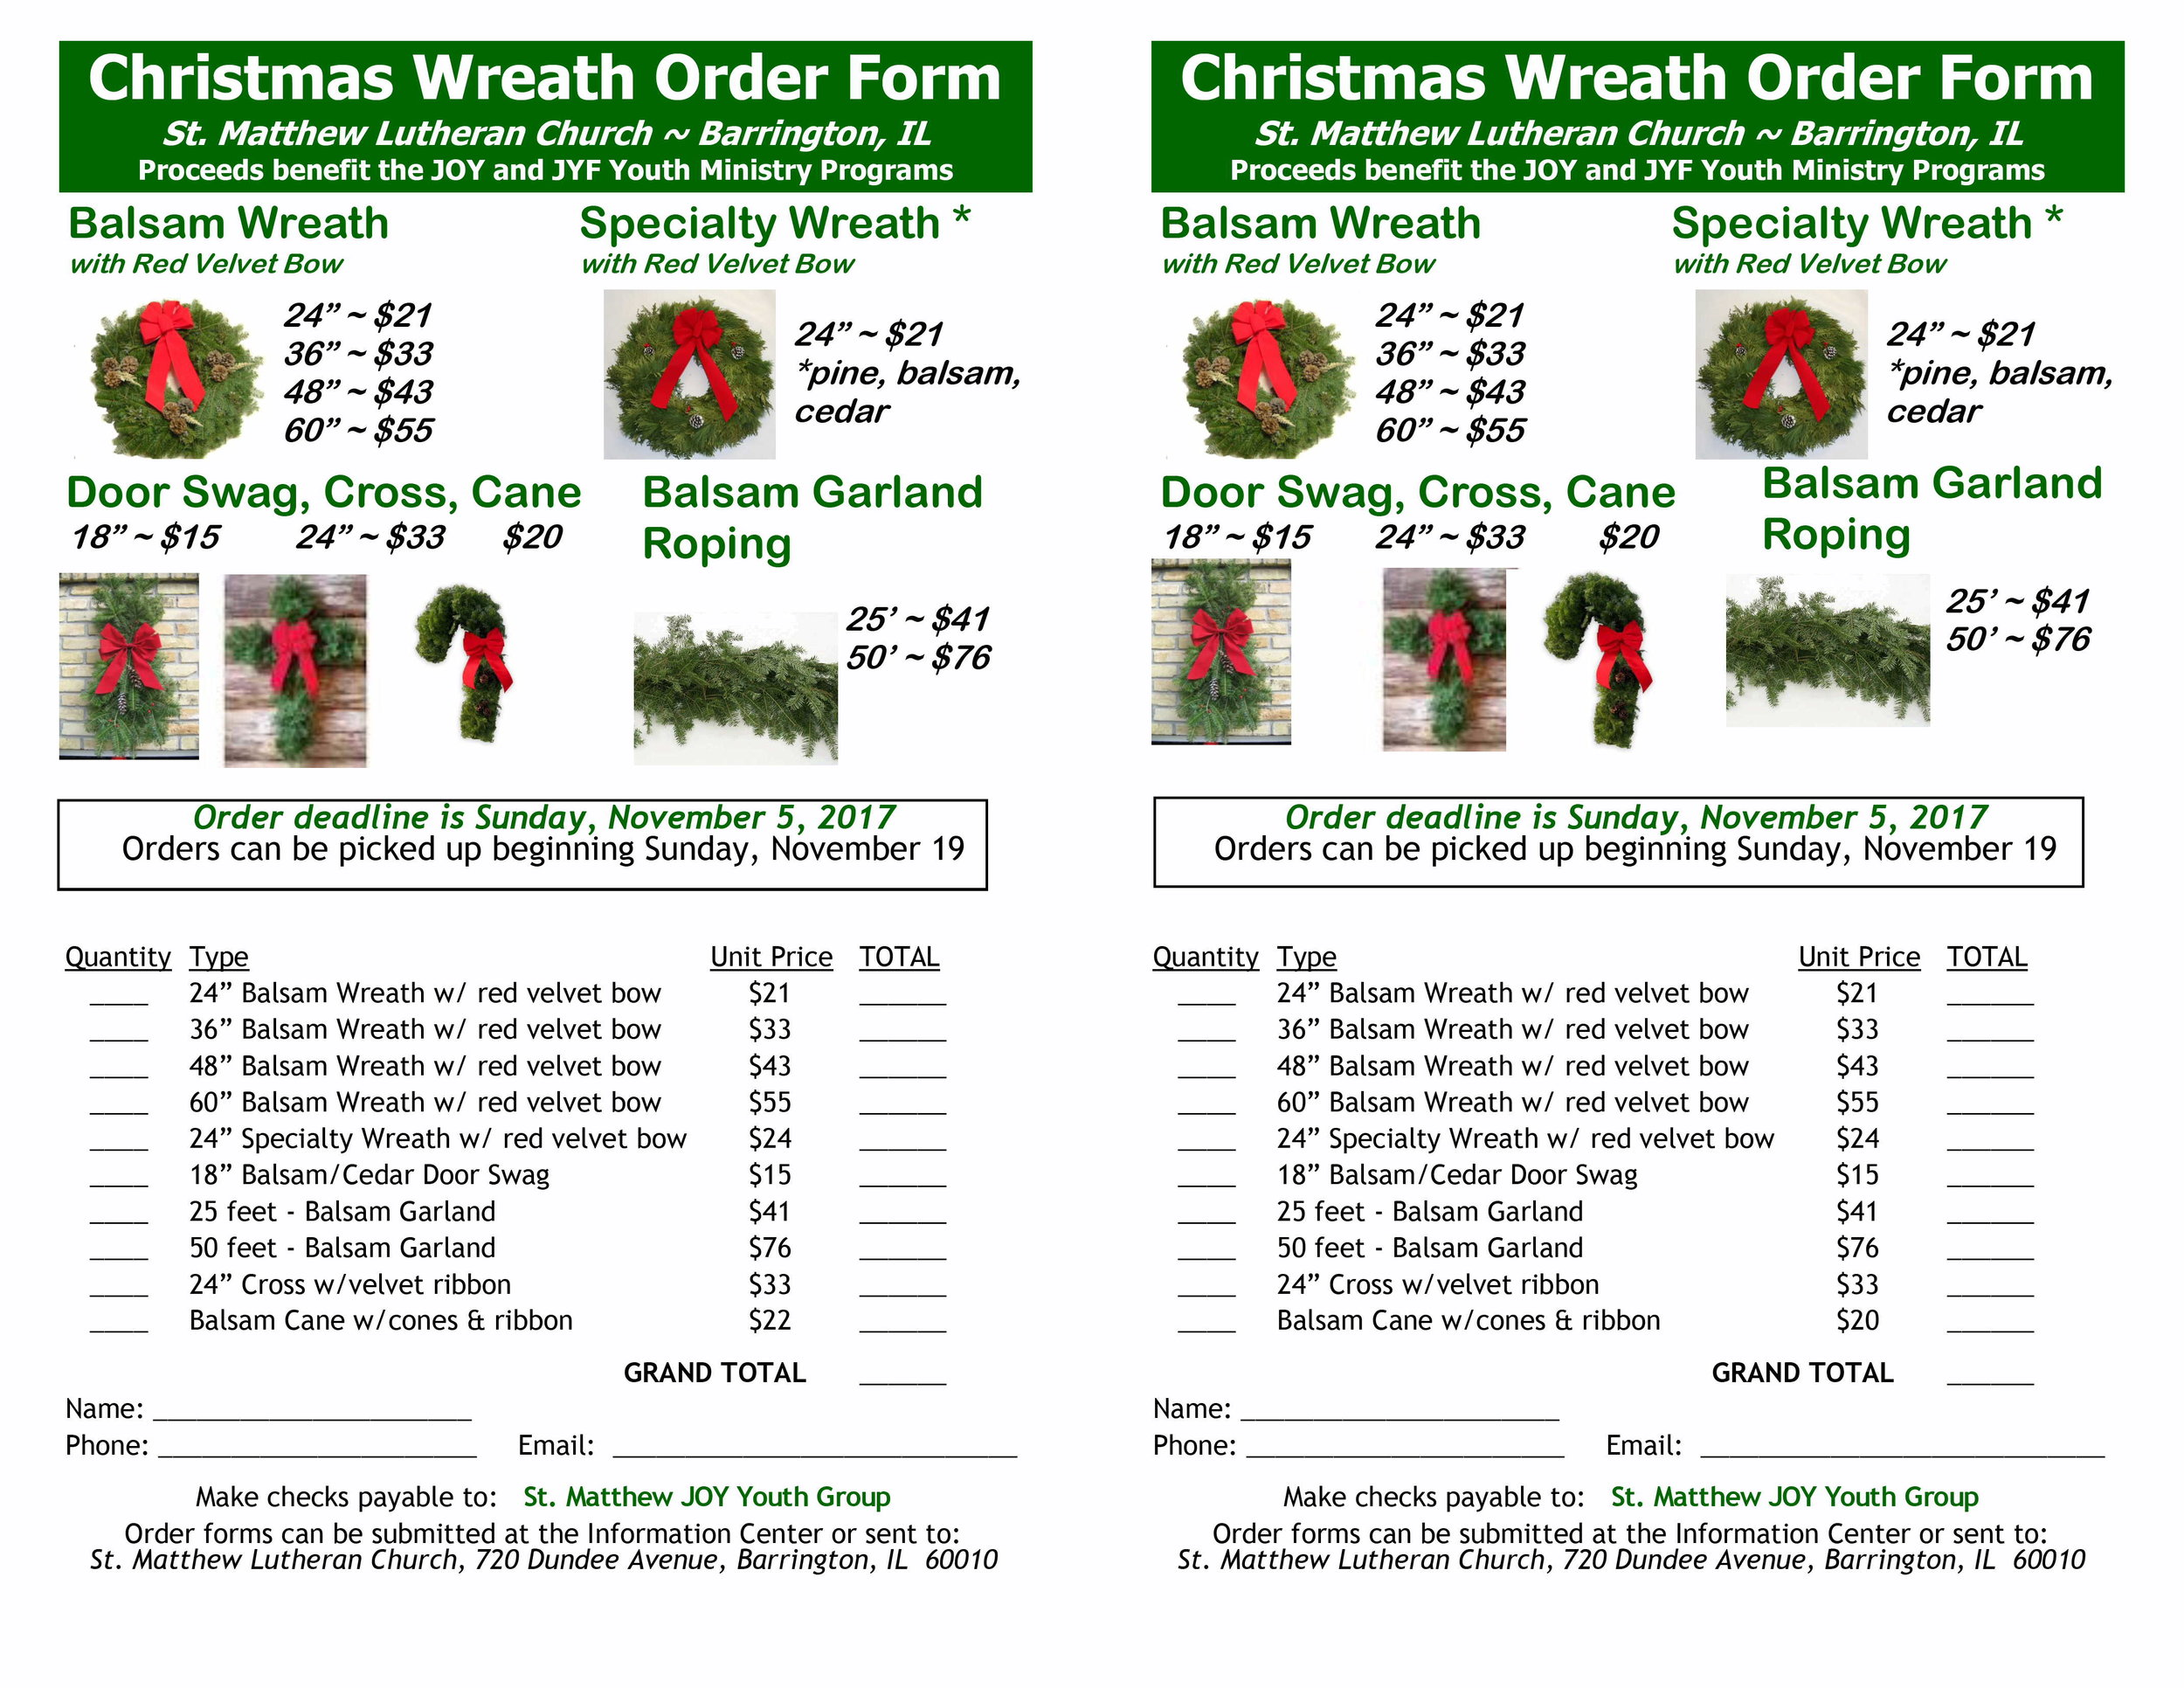 Wreath Order Form (2017).jpg